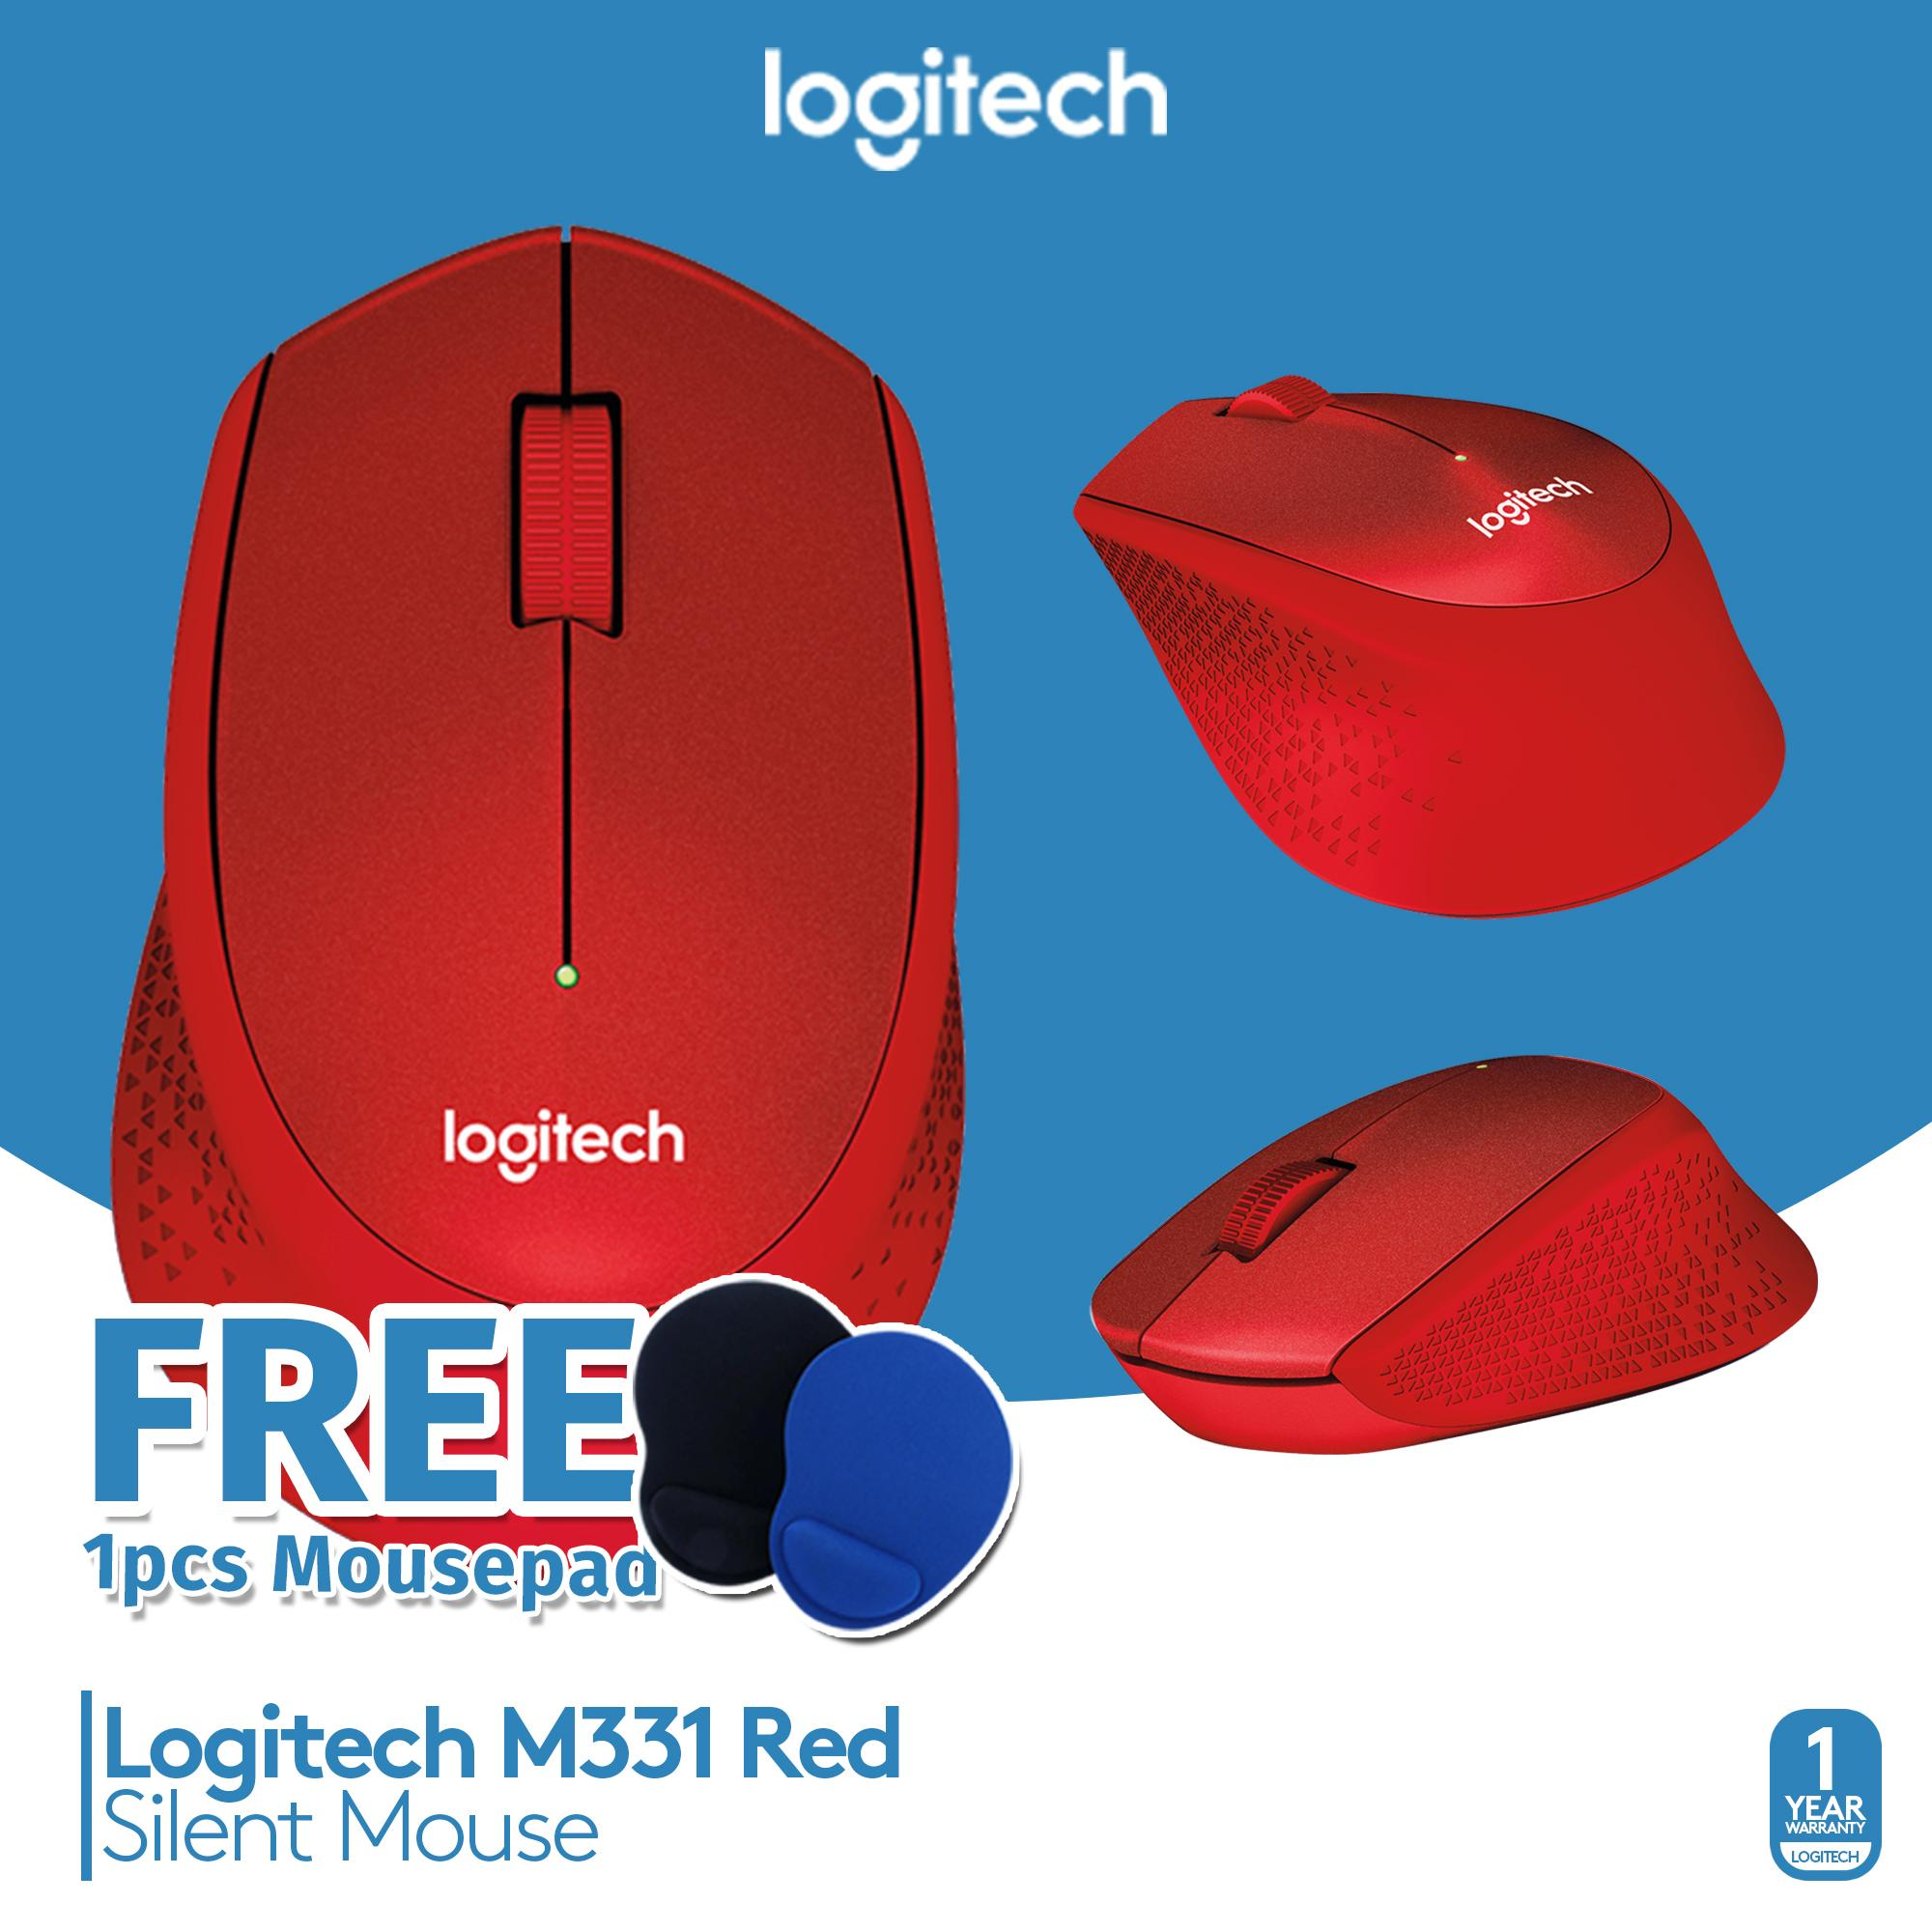 https://www.lazada.co.id/products/logitech-m331-silent-plus-wireless-mouse-mousepad-i341026772-s353167724.html